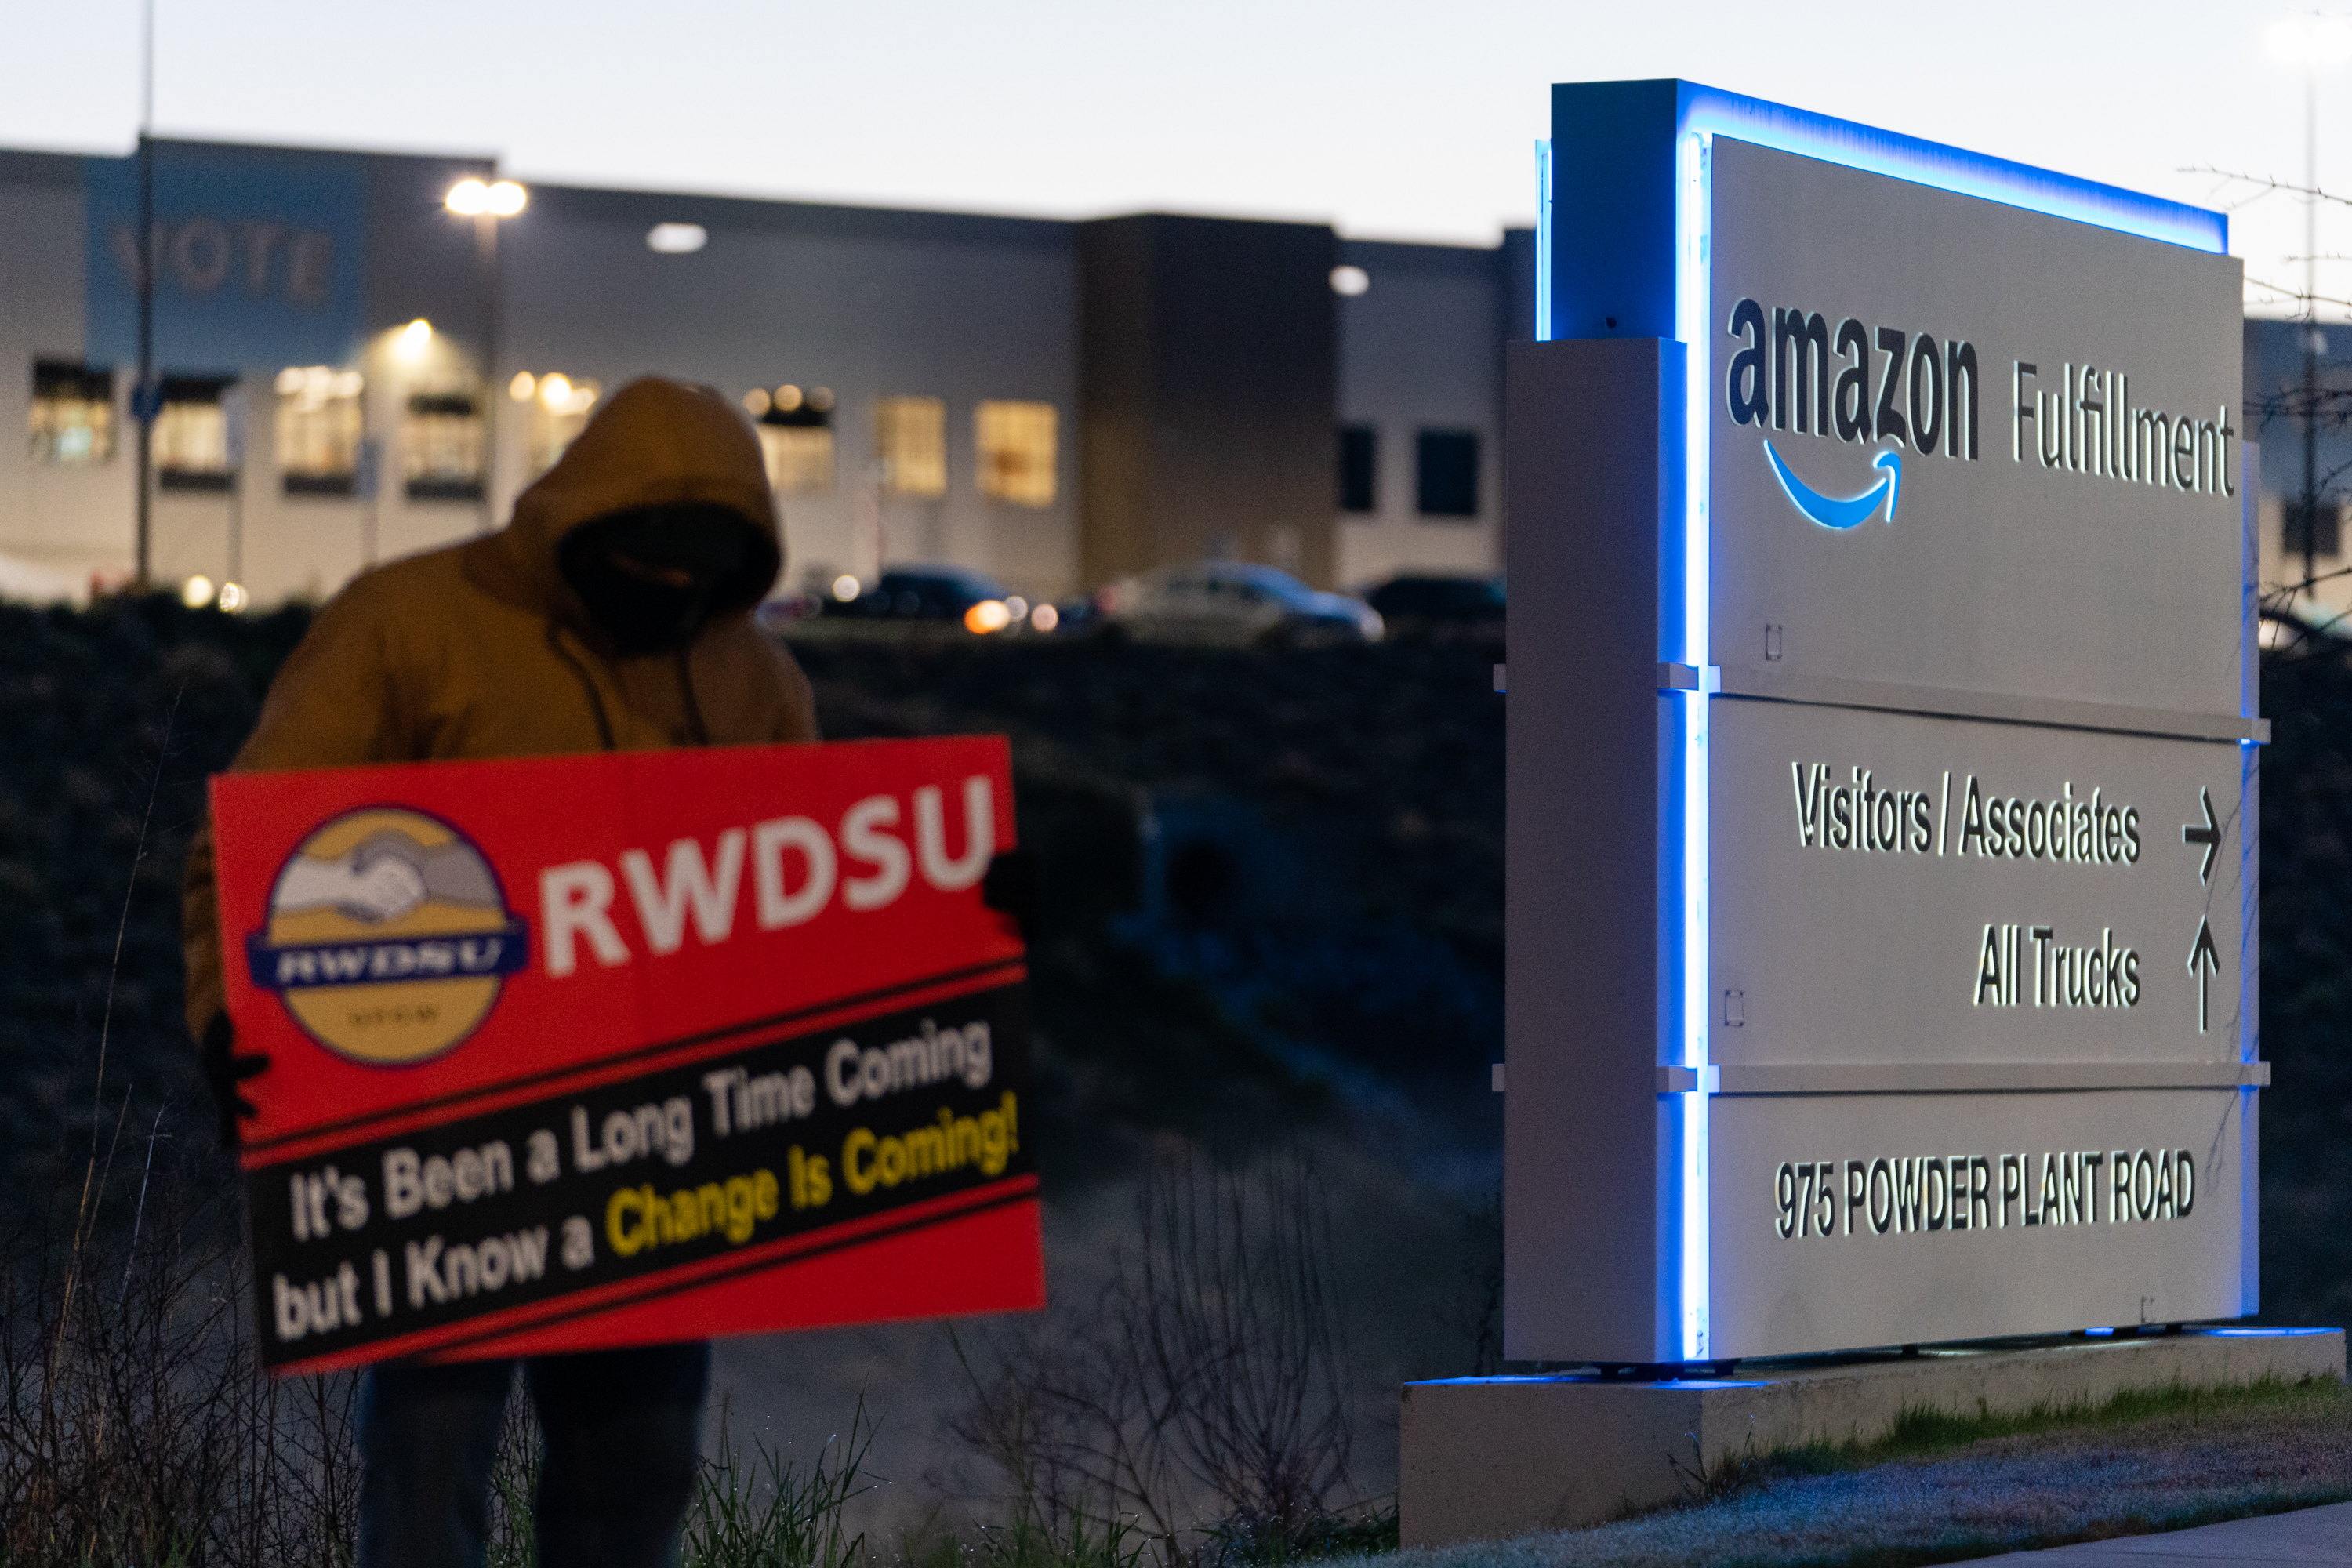 """An RWDSU representative holds a sign that reads """"RWDSU: It's been a long time coming but I know a change is coming"""" outside the Amazon fulfillment warehouse at the center of a unionization drive on March 29, 2021, in Bessemer, Alabama."""